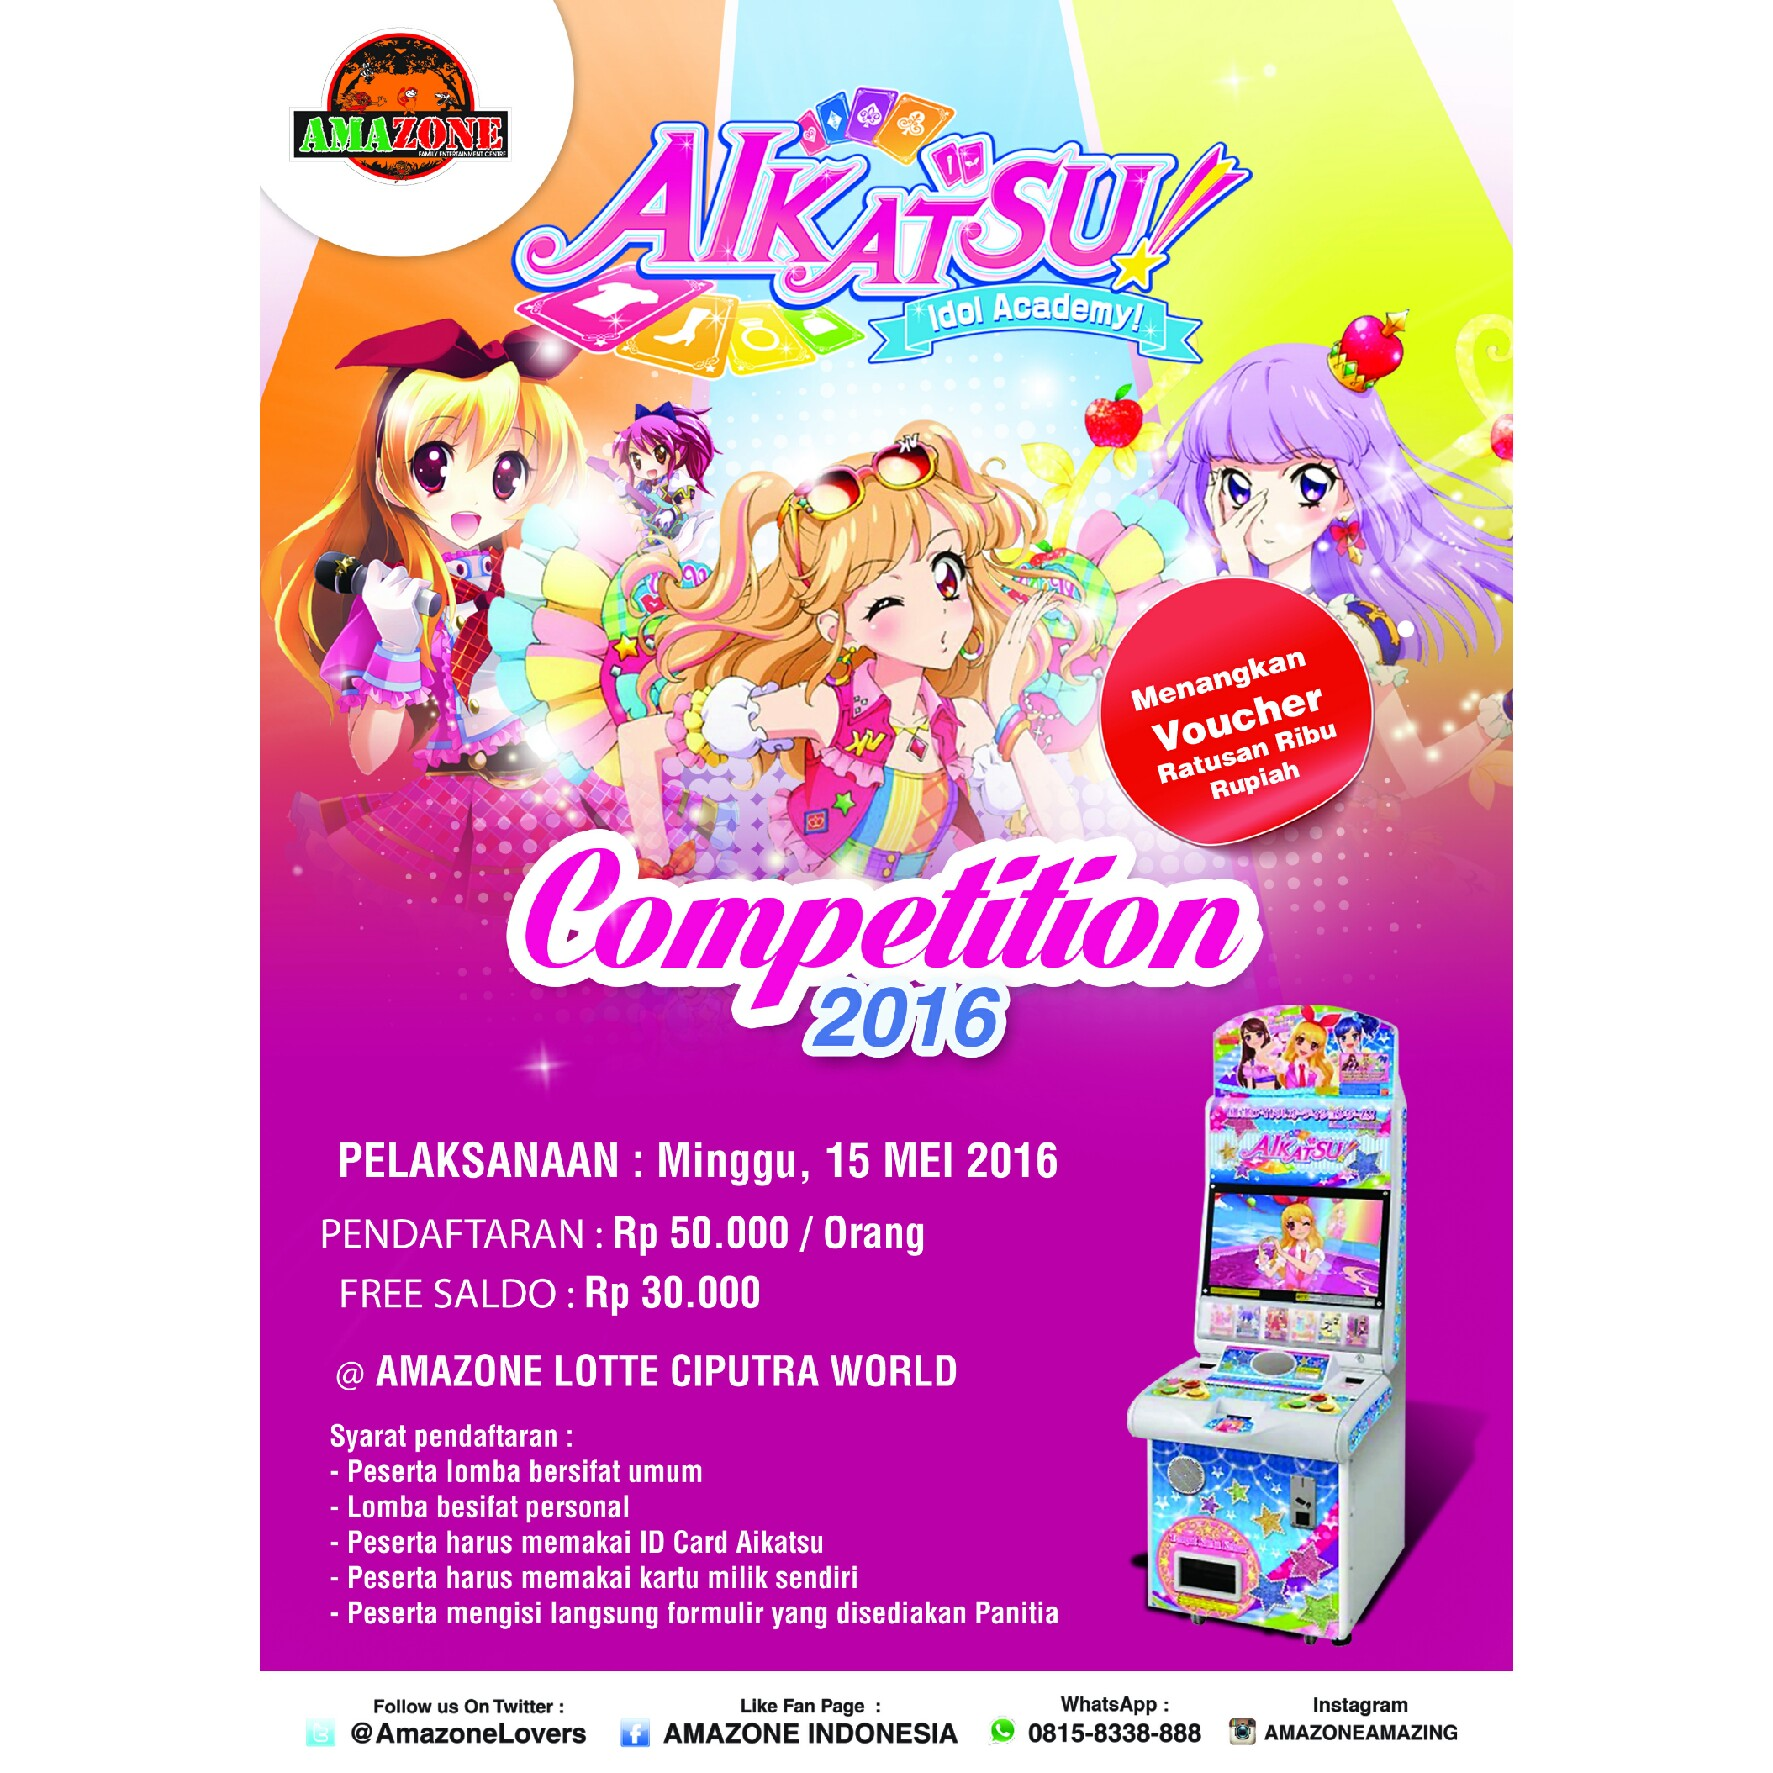 Aikatsu petition 2016 Amazone Lotte Ciputra World